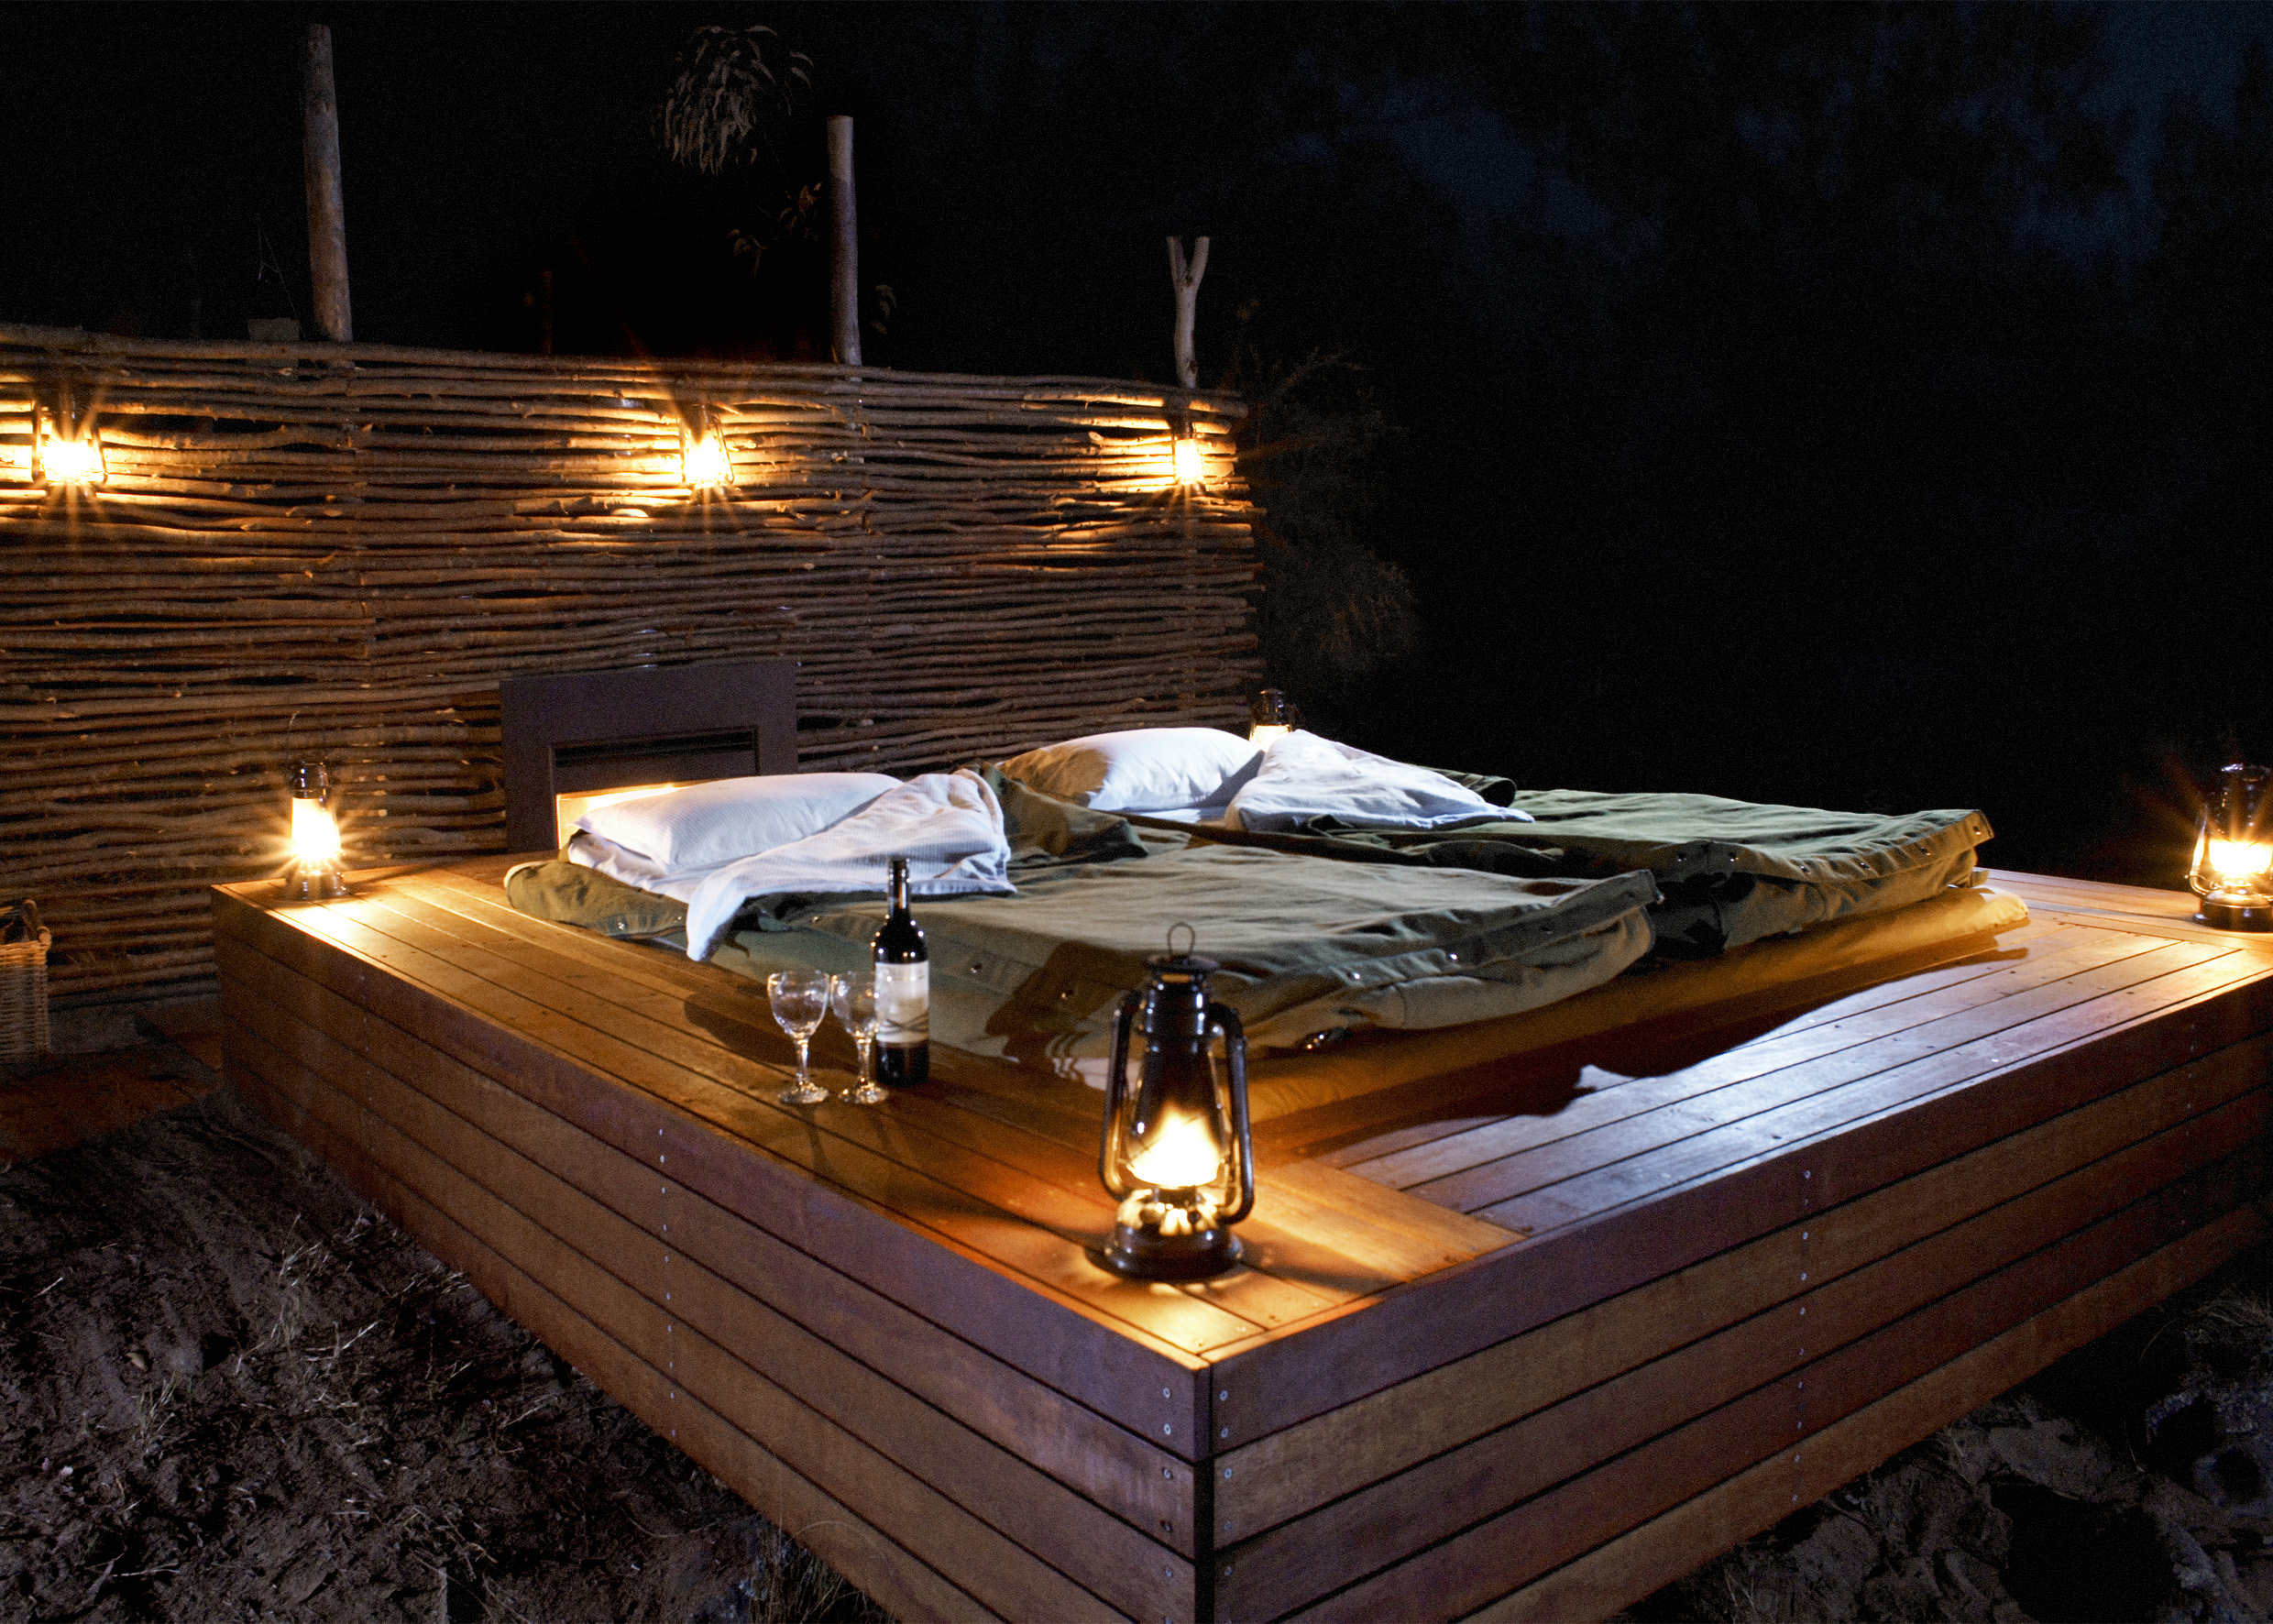 Sleep on the outdoor deck in a private deluxe safaris swag.